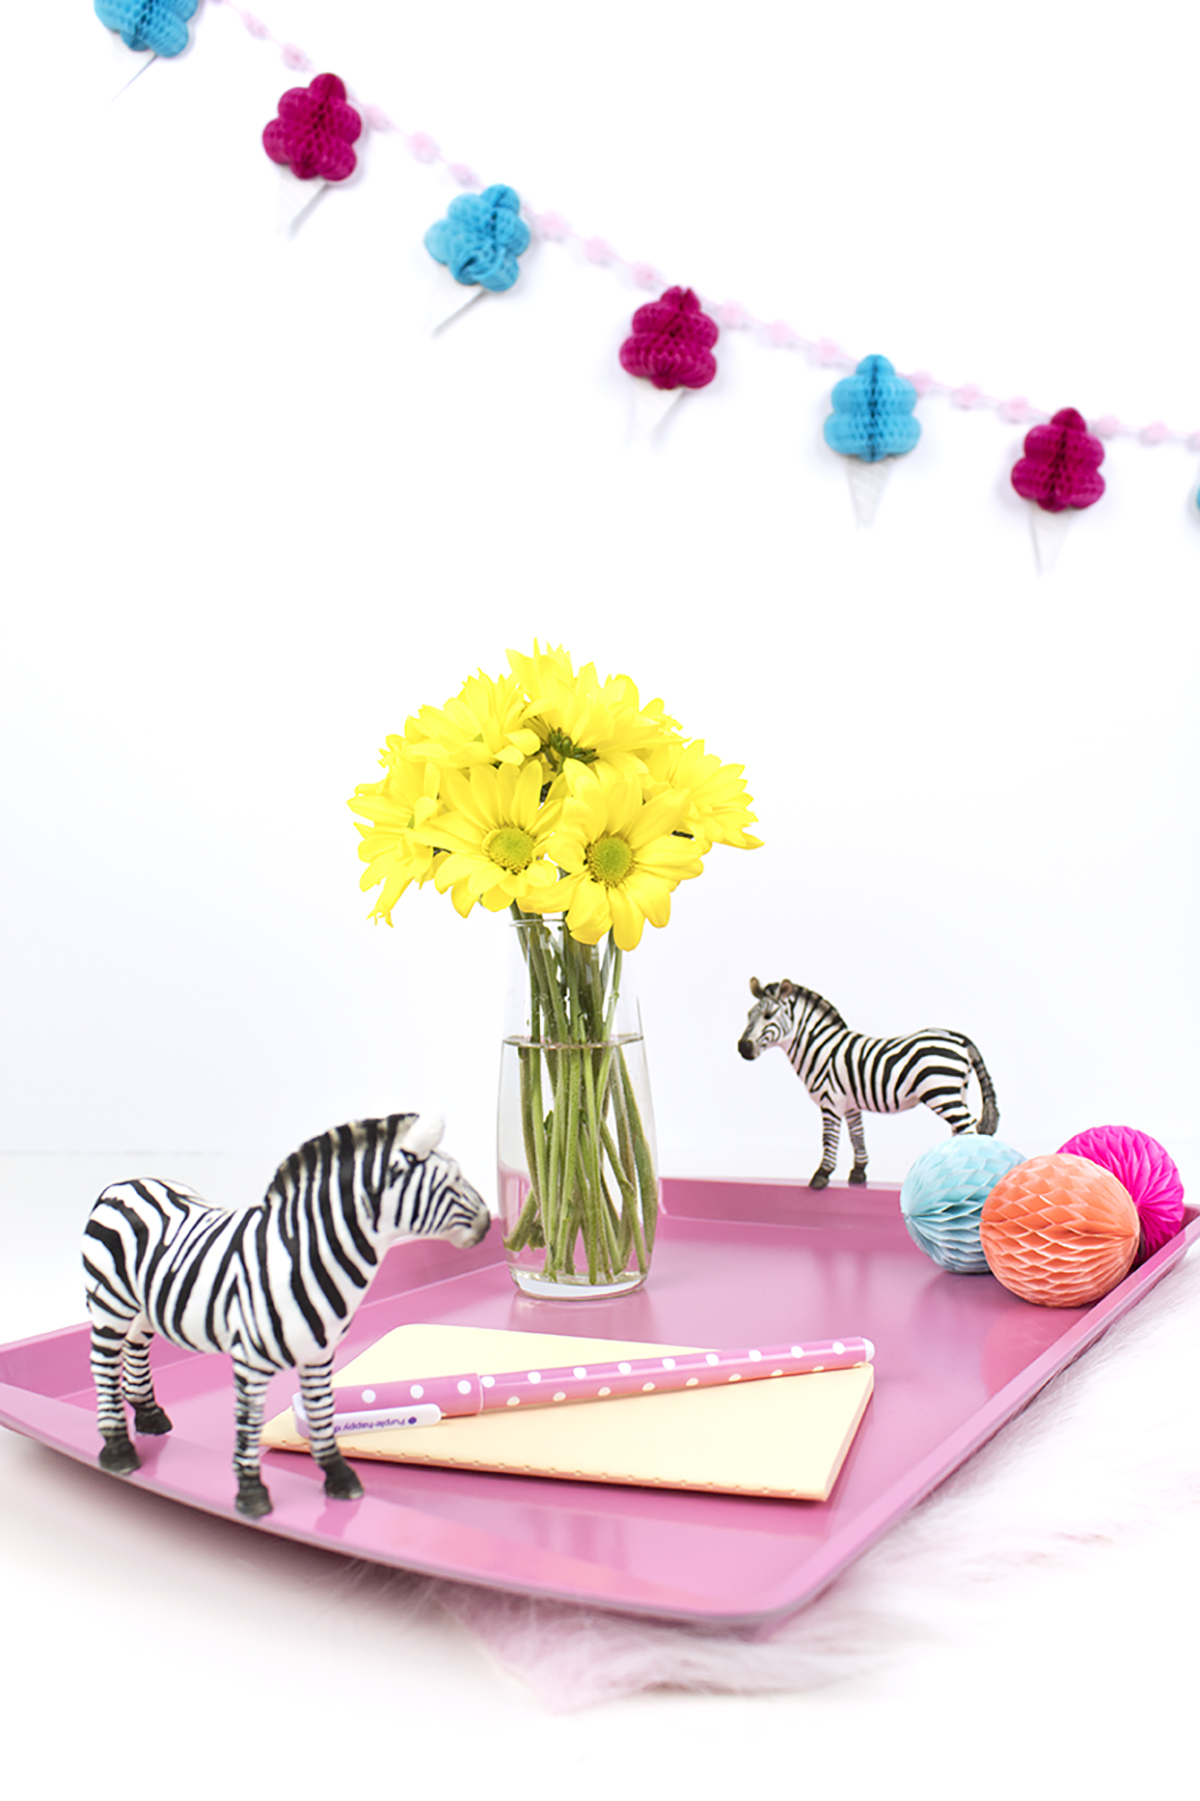 DIY Zebra Party Tray. Click for the full how-to!